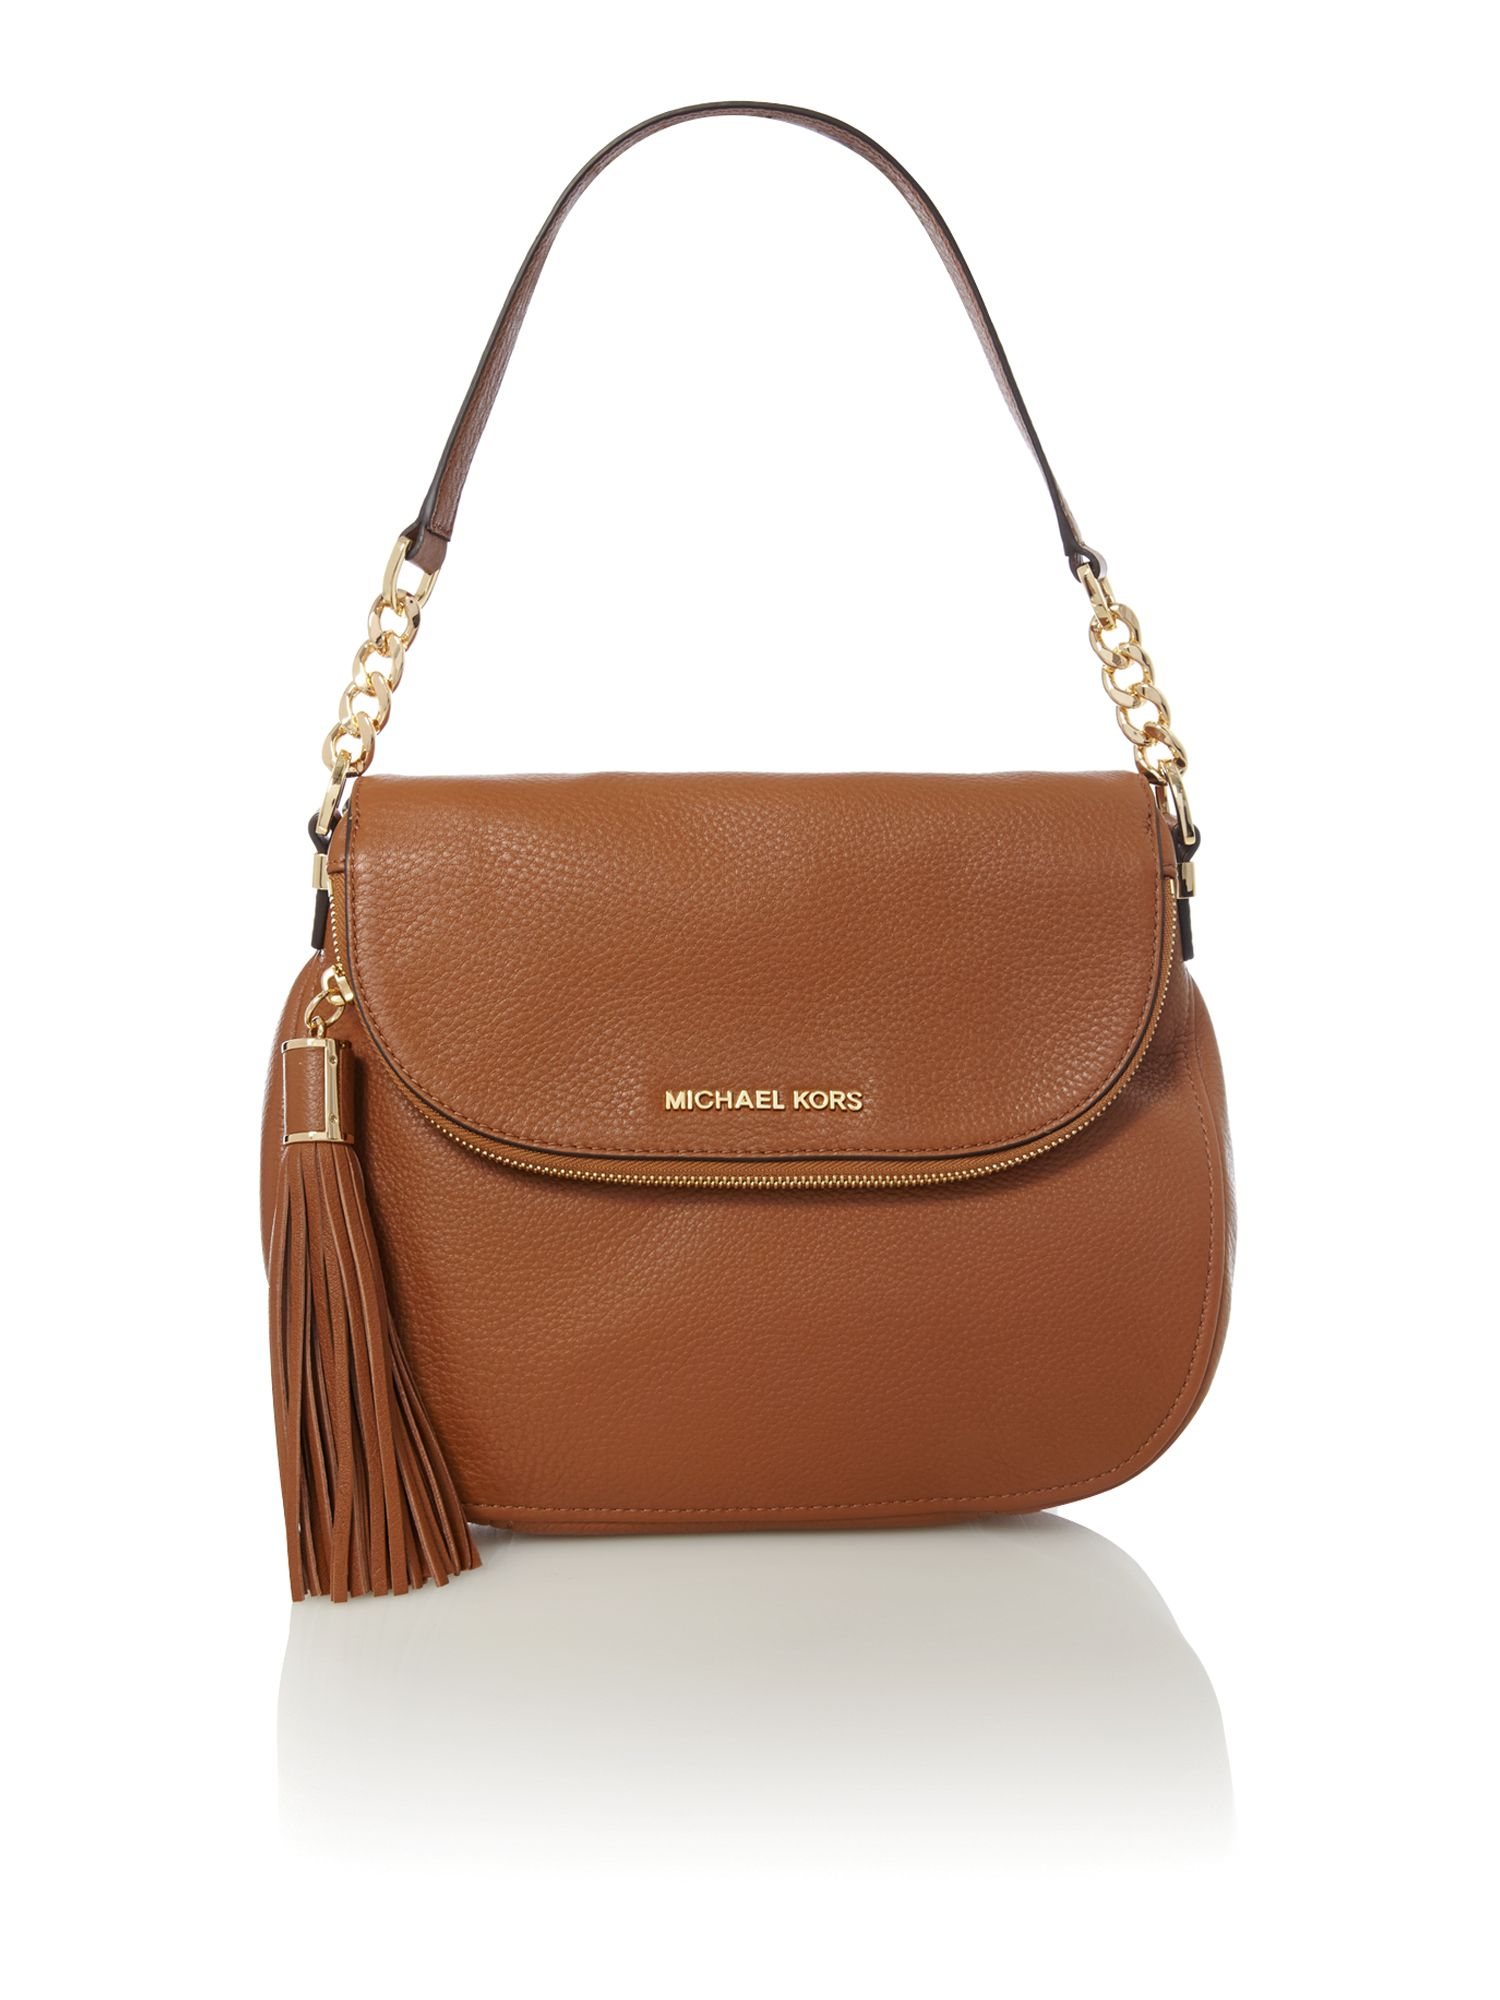 Michael kors Bedford Tan Flap Over Shoulder Bag in Brown | Lyst